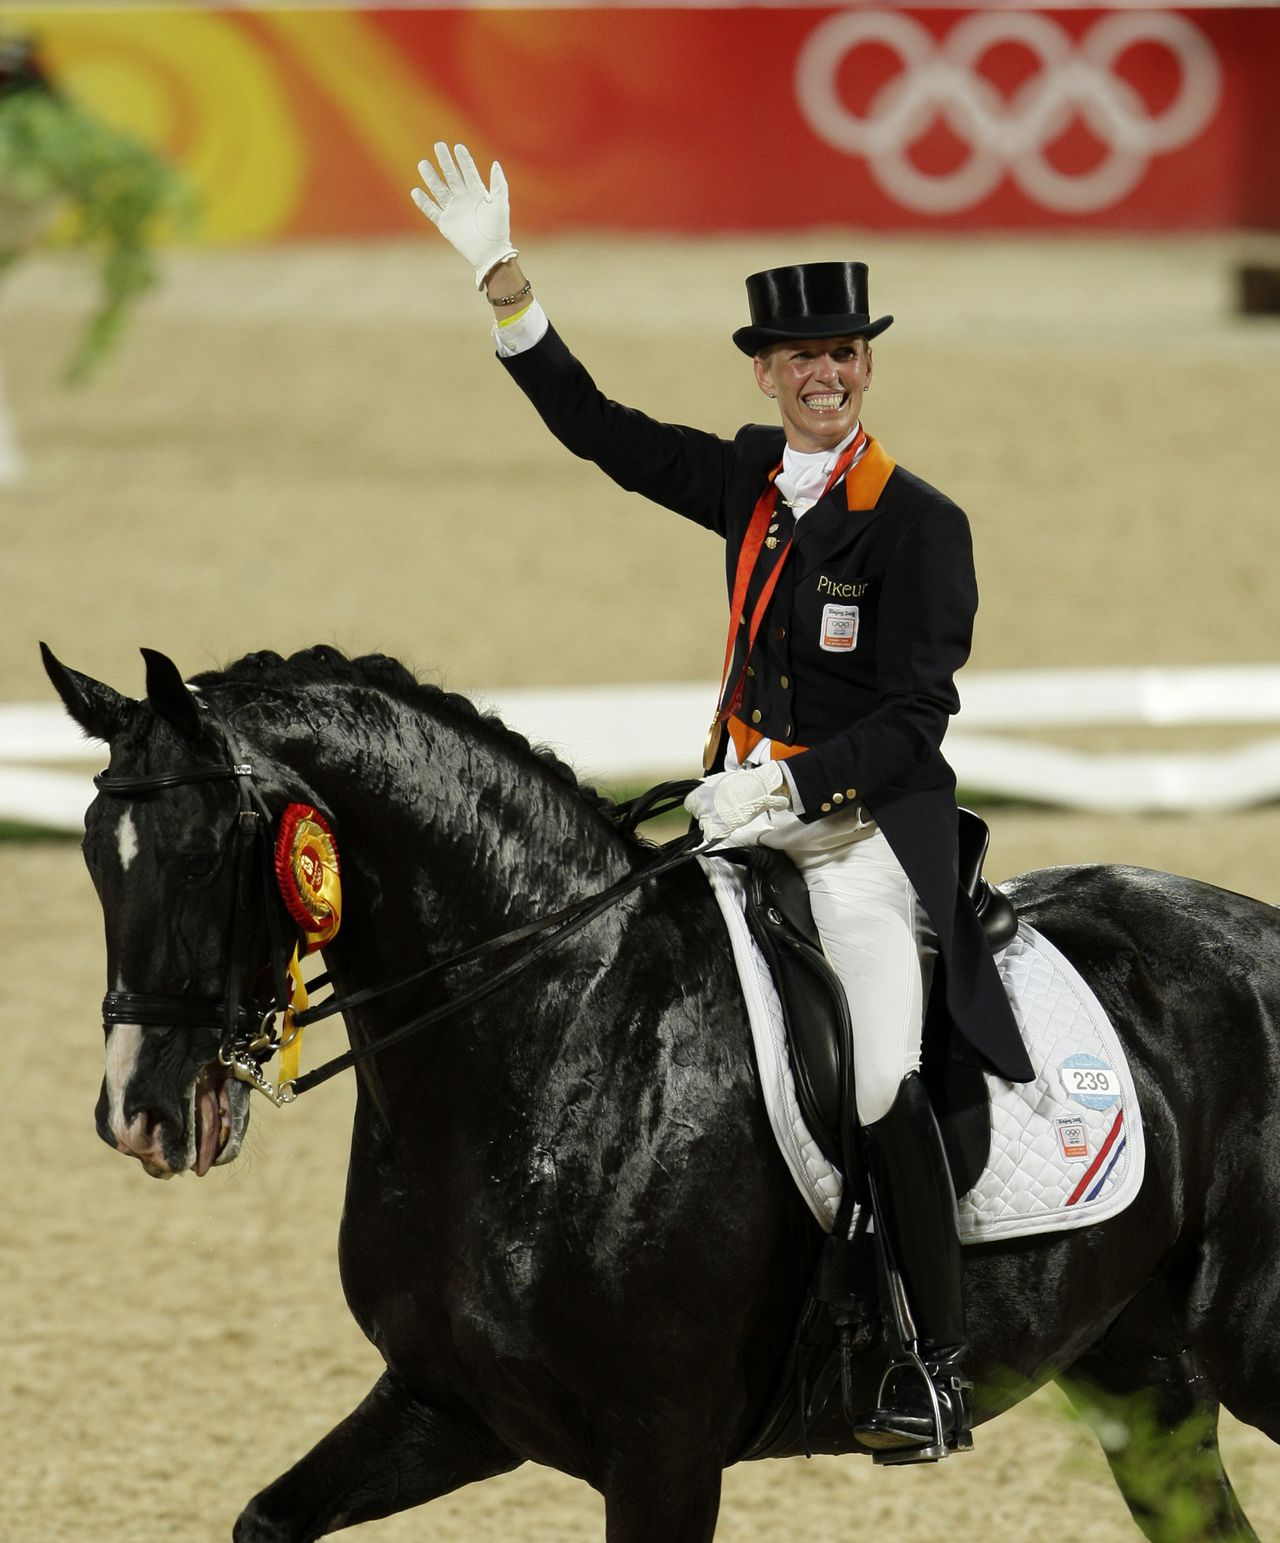 Gold medallist Anky Van Grunsven of the Netherlands celebrates after winning the Equestrian Individual Dressage competition during the Beijing 2008 Olympics in Hong Kong, Tuesday, Aug. 19, 2008. (AP Photo/Kin Cheung)